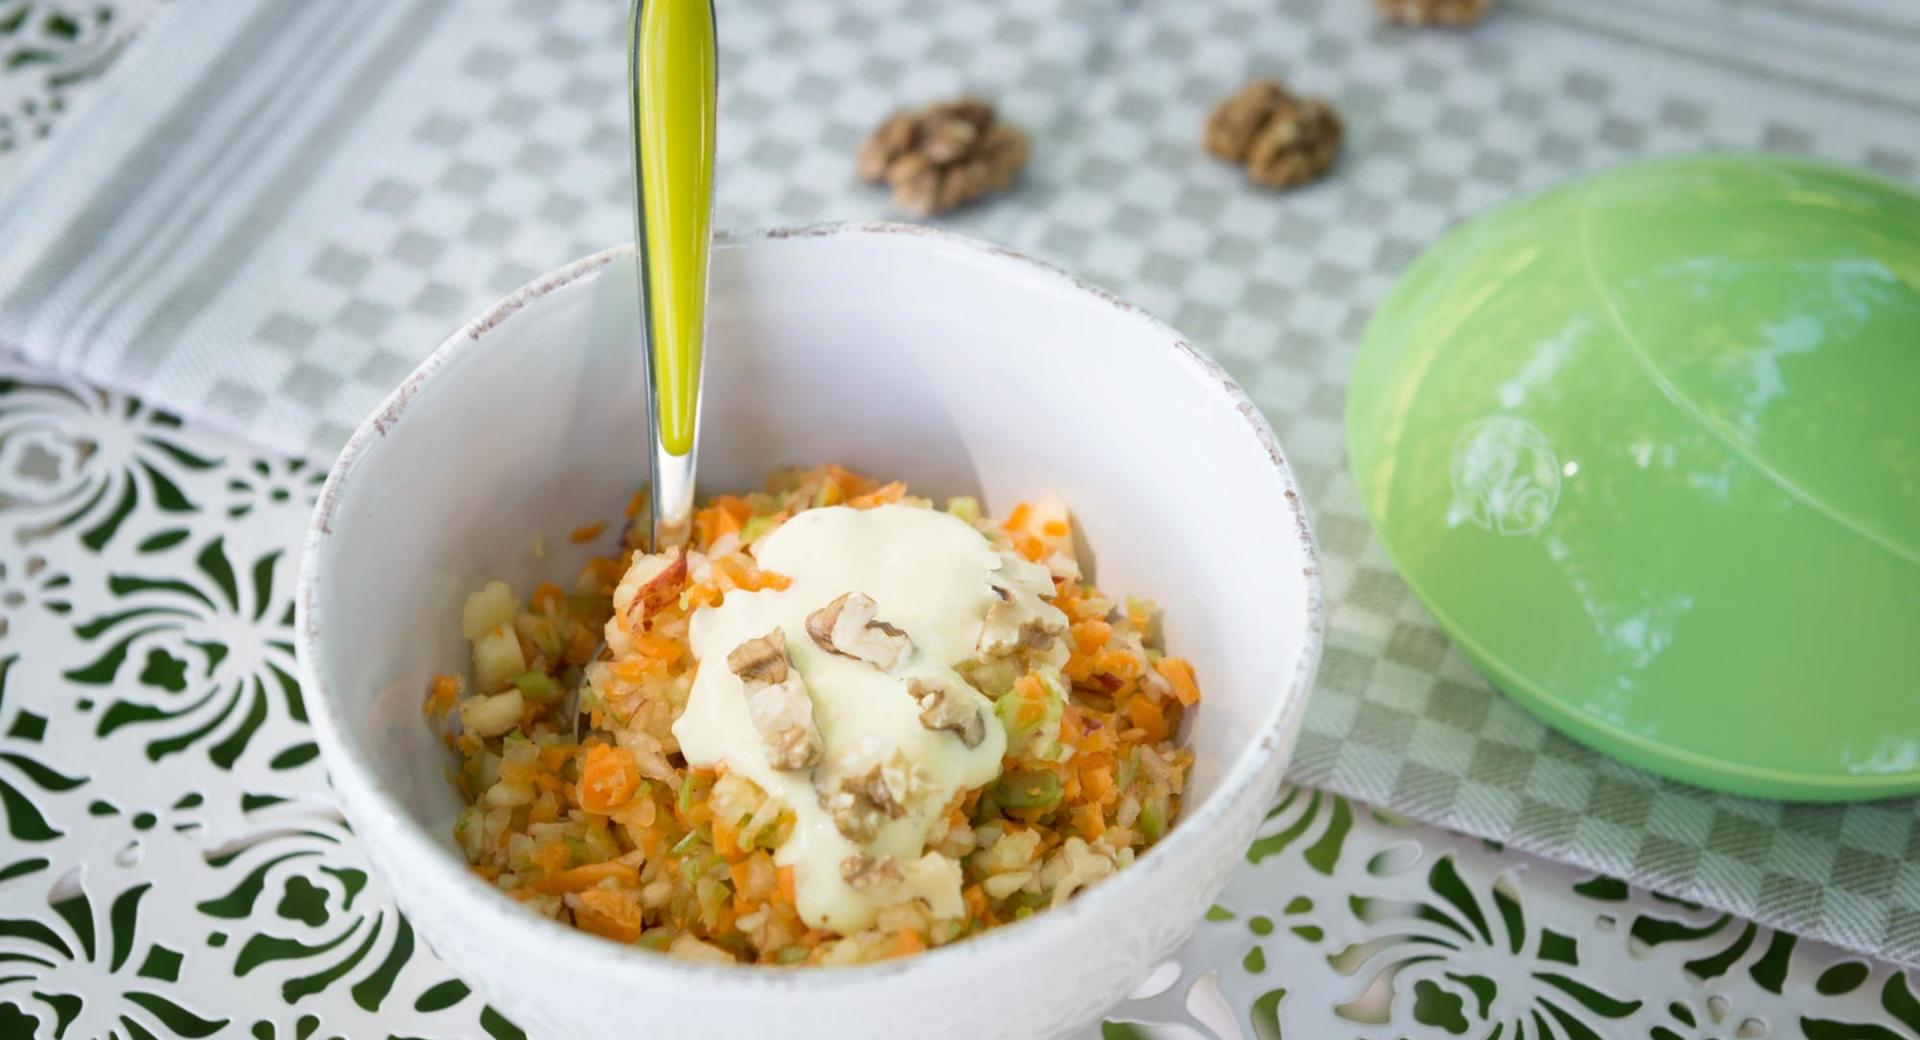 Apple-carrot salad with walnuts